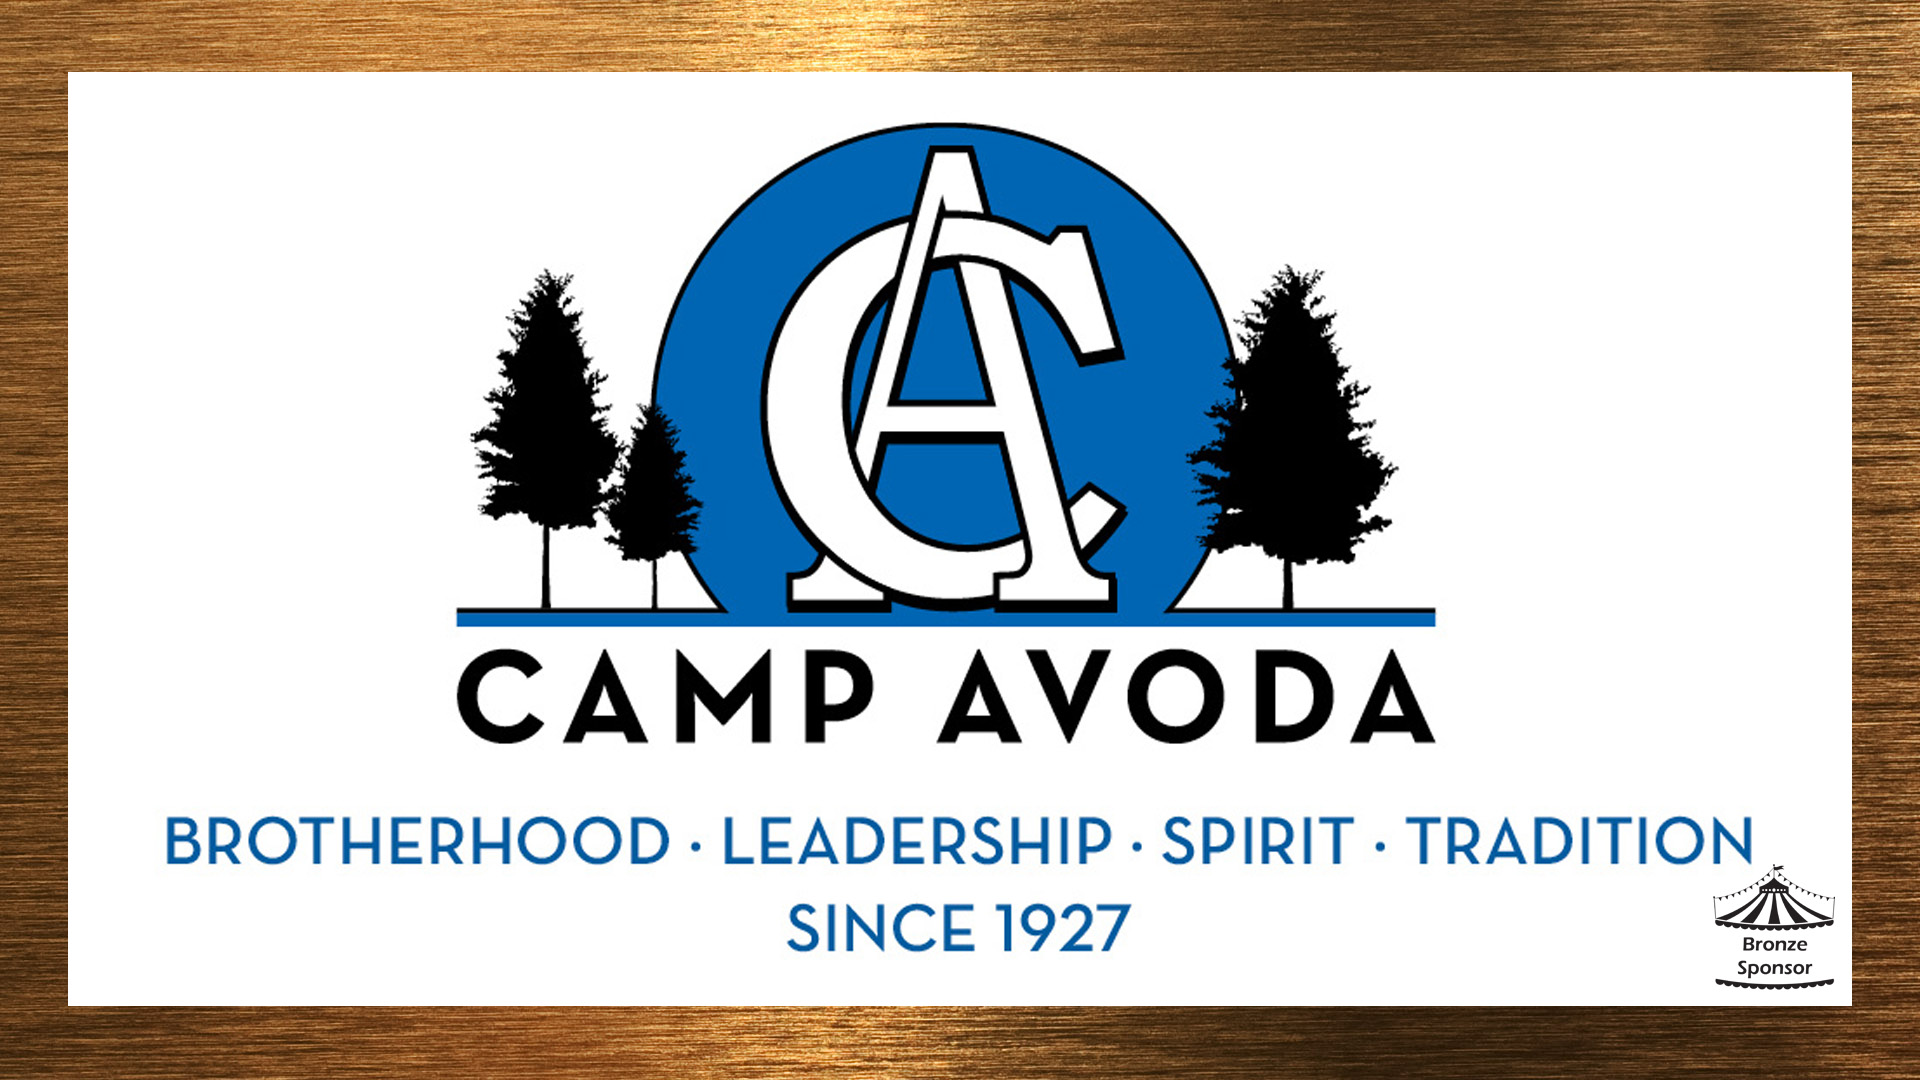 Visit Camp Avoda on the web: